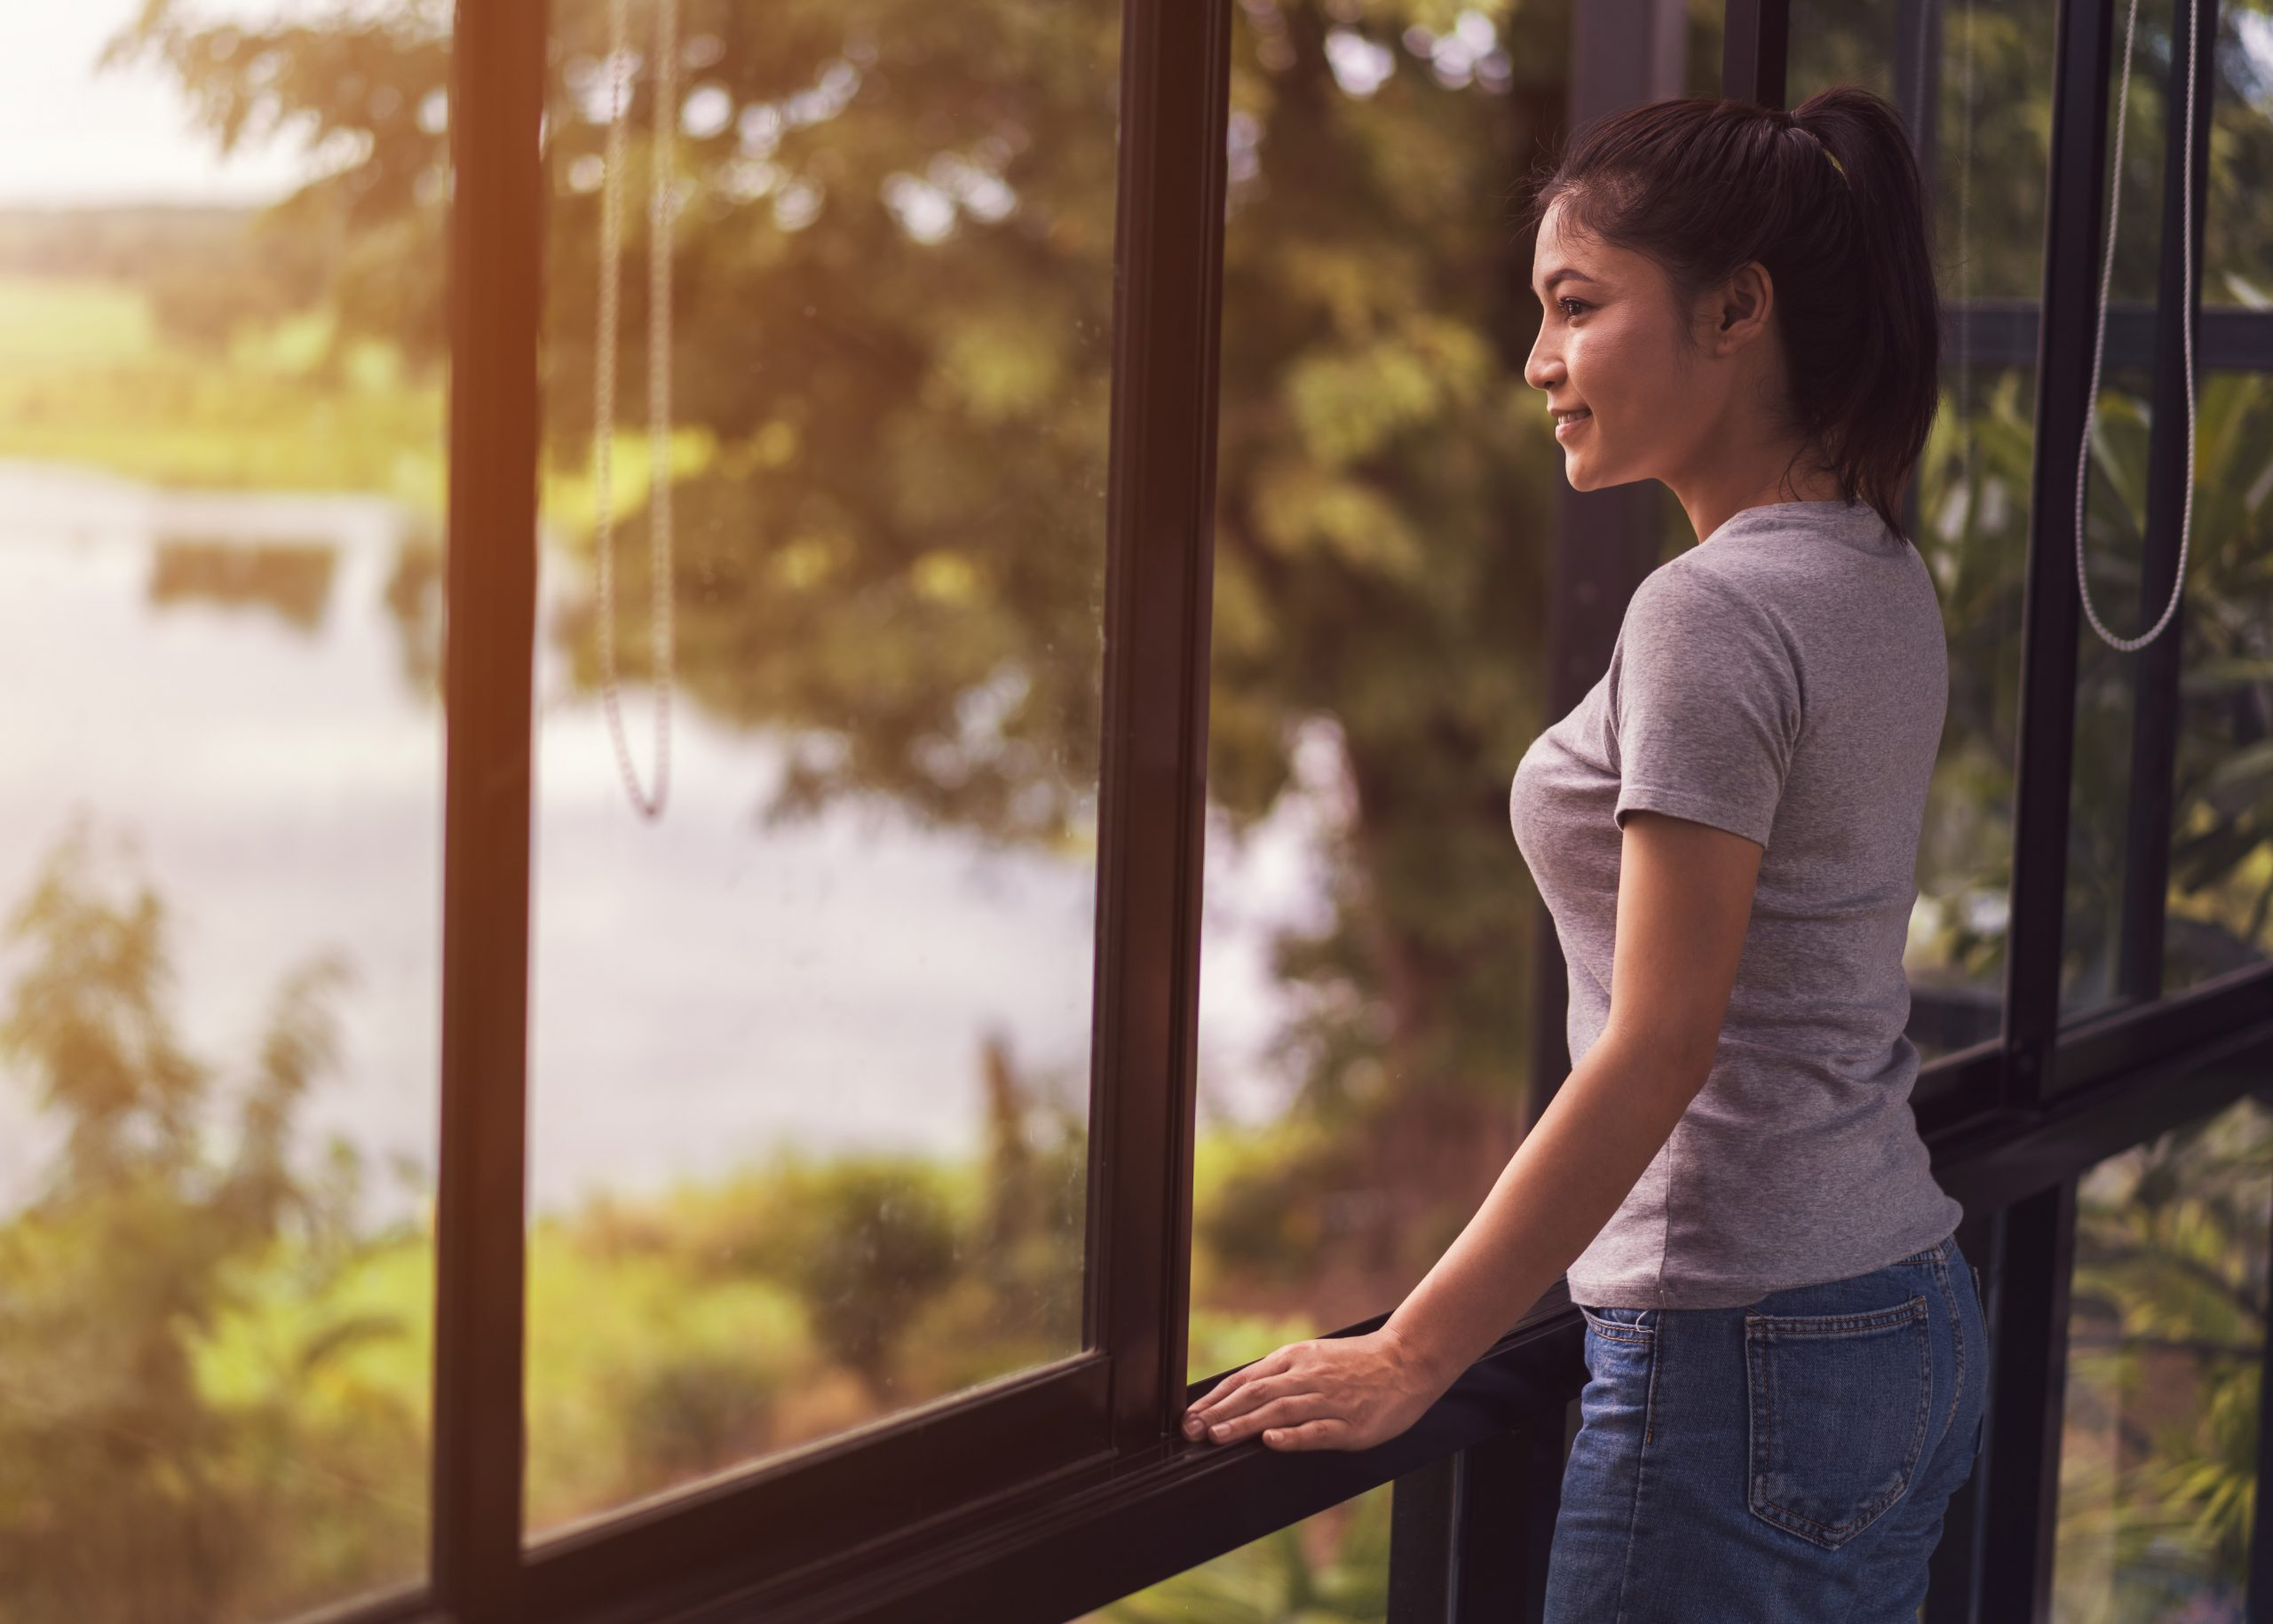 Young woman looking through window at a lake. Link takes you to the Bank of Versailles Checking and Savings Accounts page.